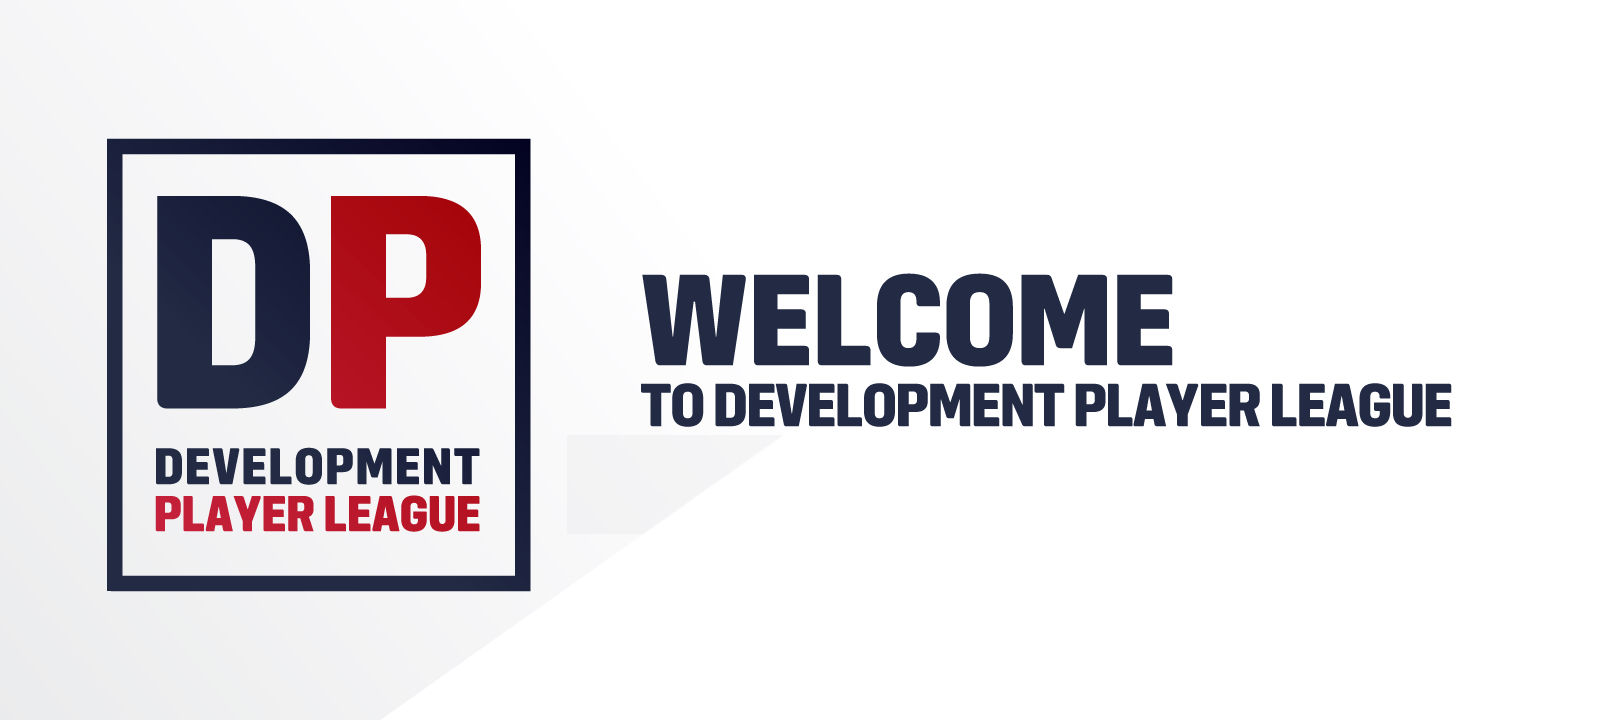 ALBION SC GIRLS PROGRAM LAUNCH DEVELOPMENT PLAYER LEAGUE